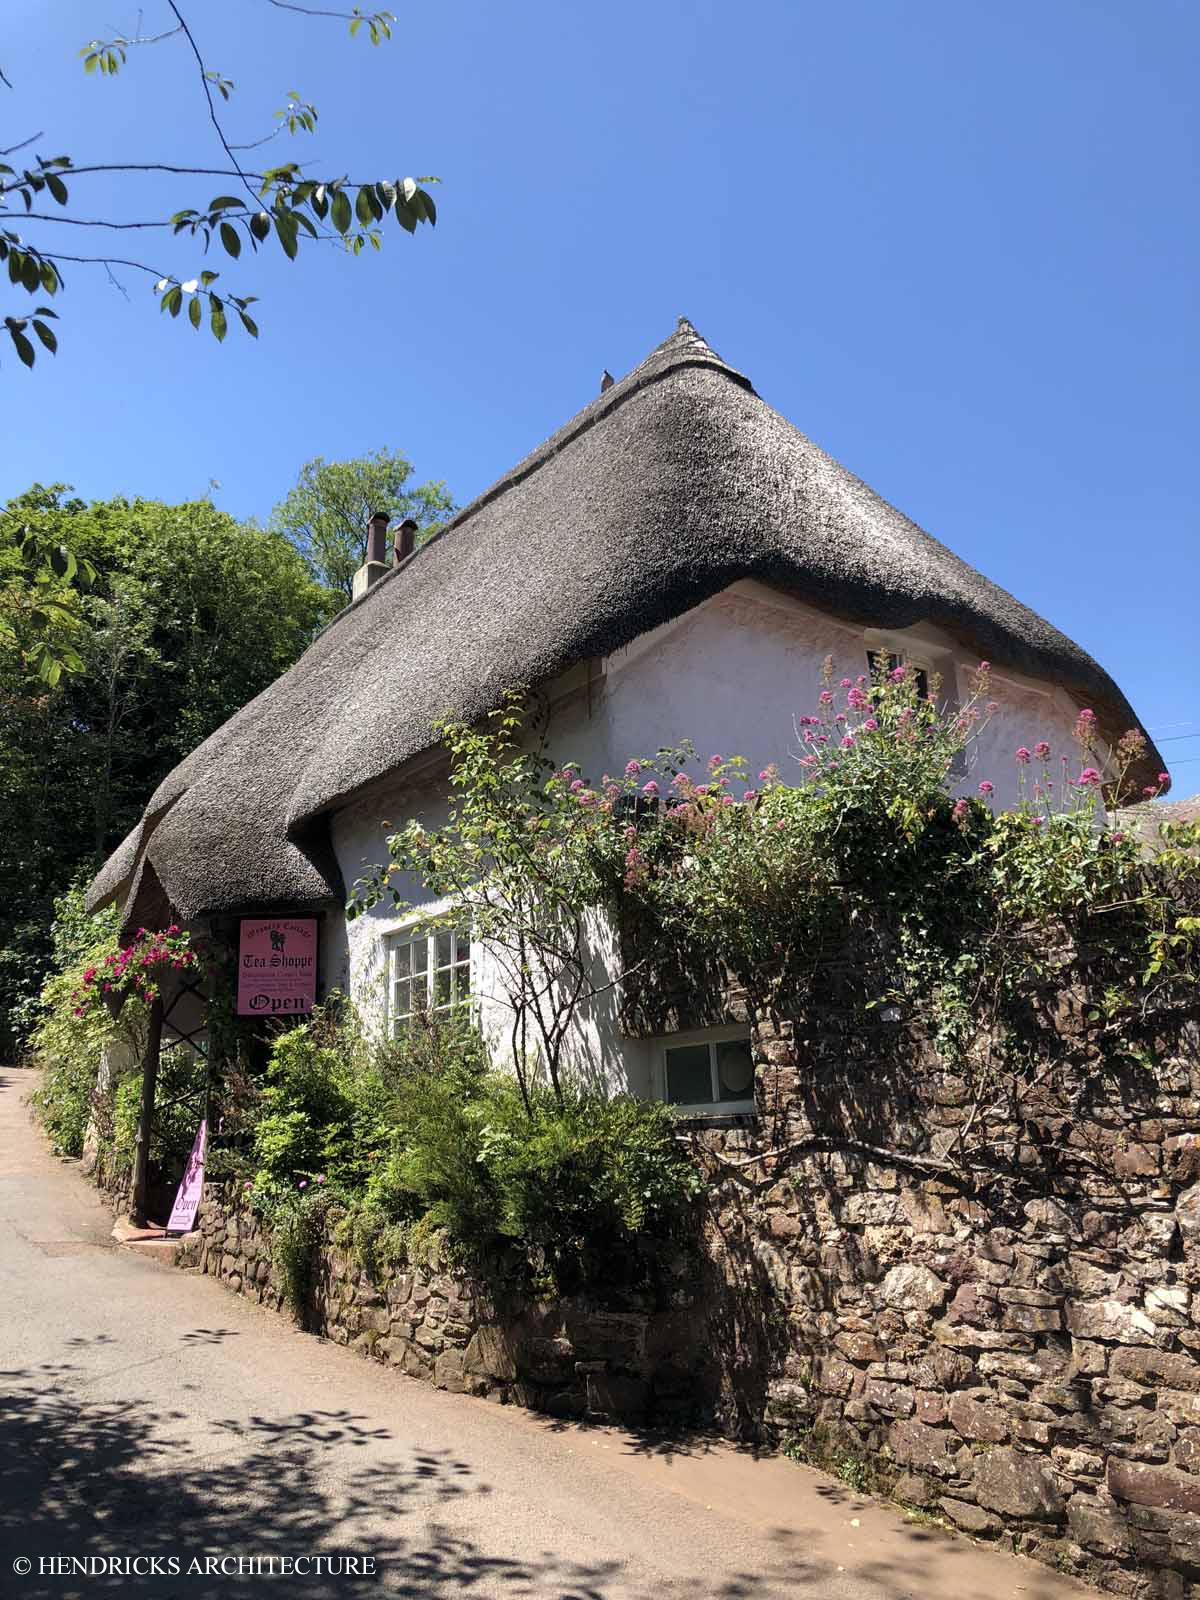 Home with thatch roof in Cockington Village